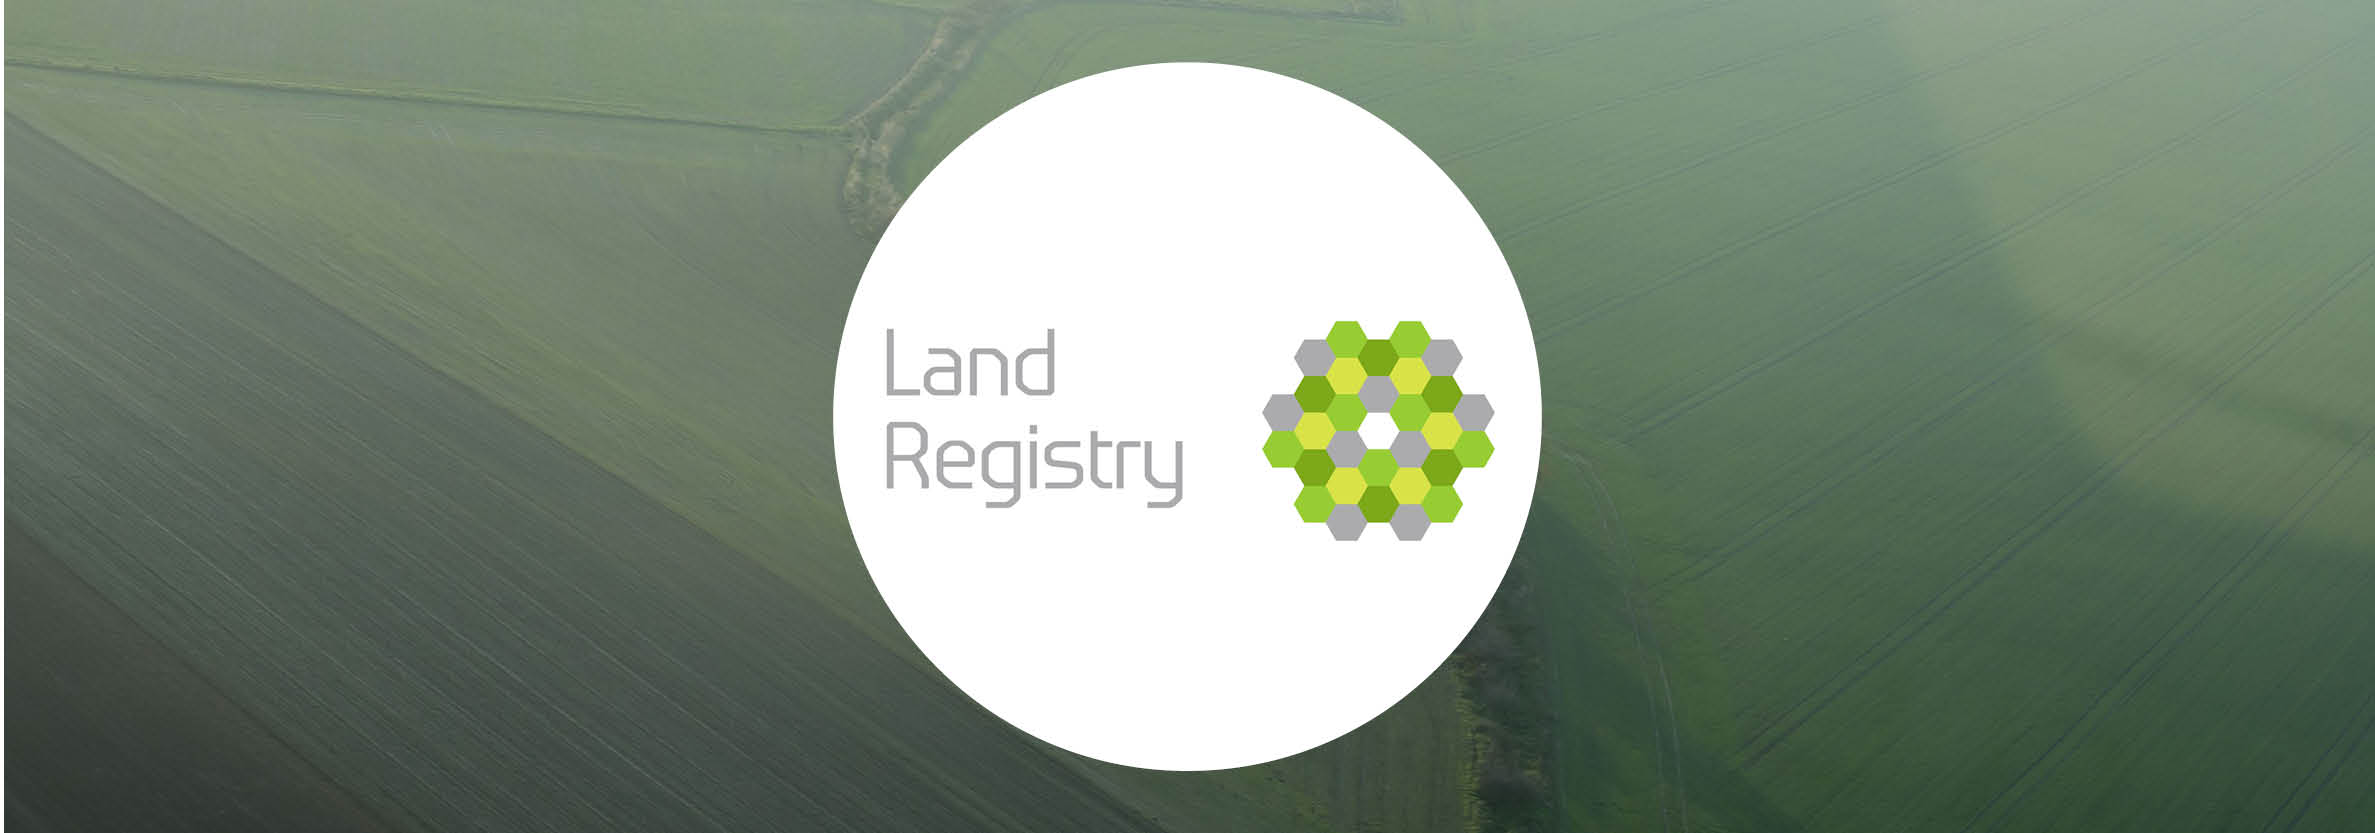 Land Registry Main Image